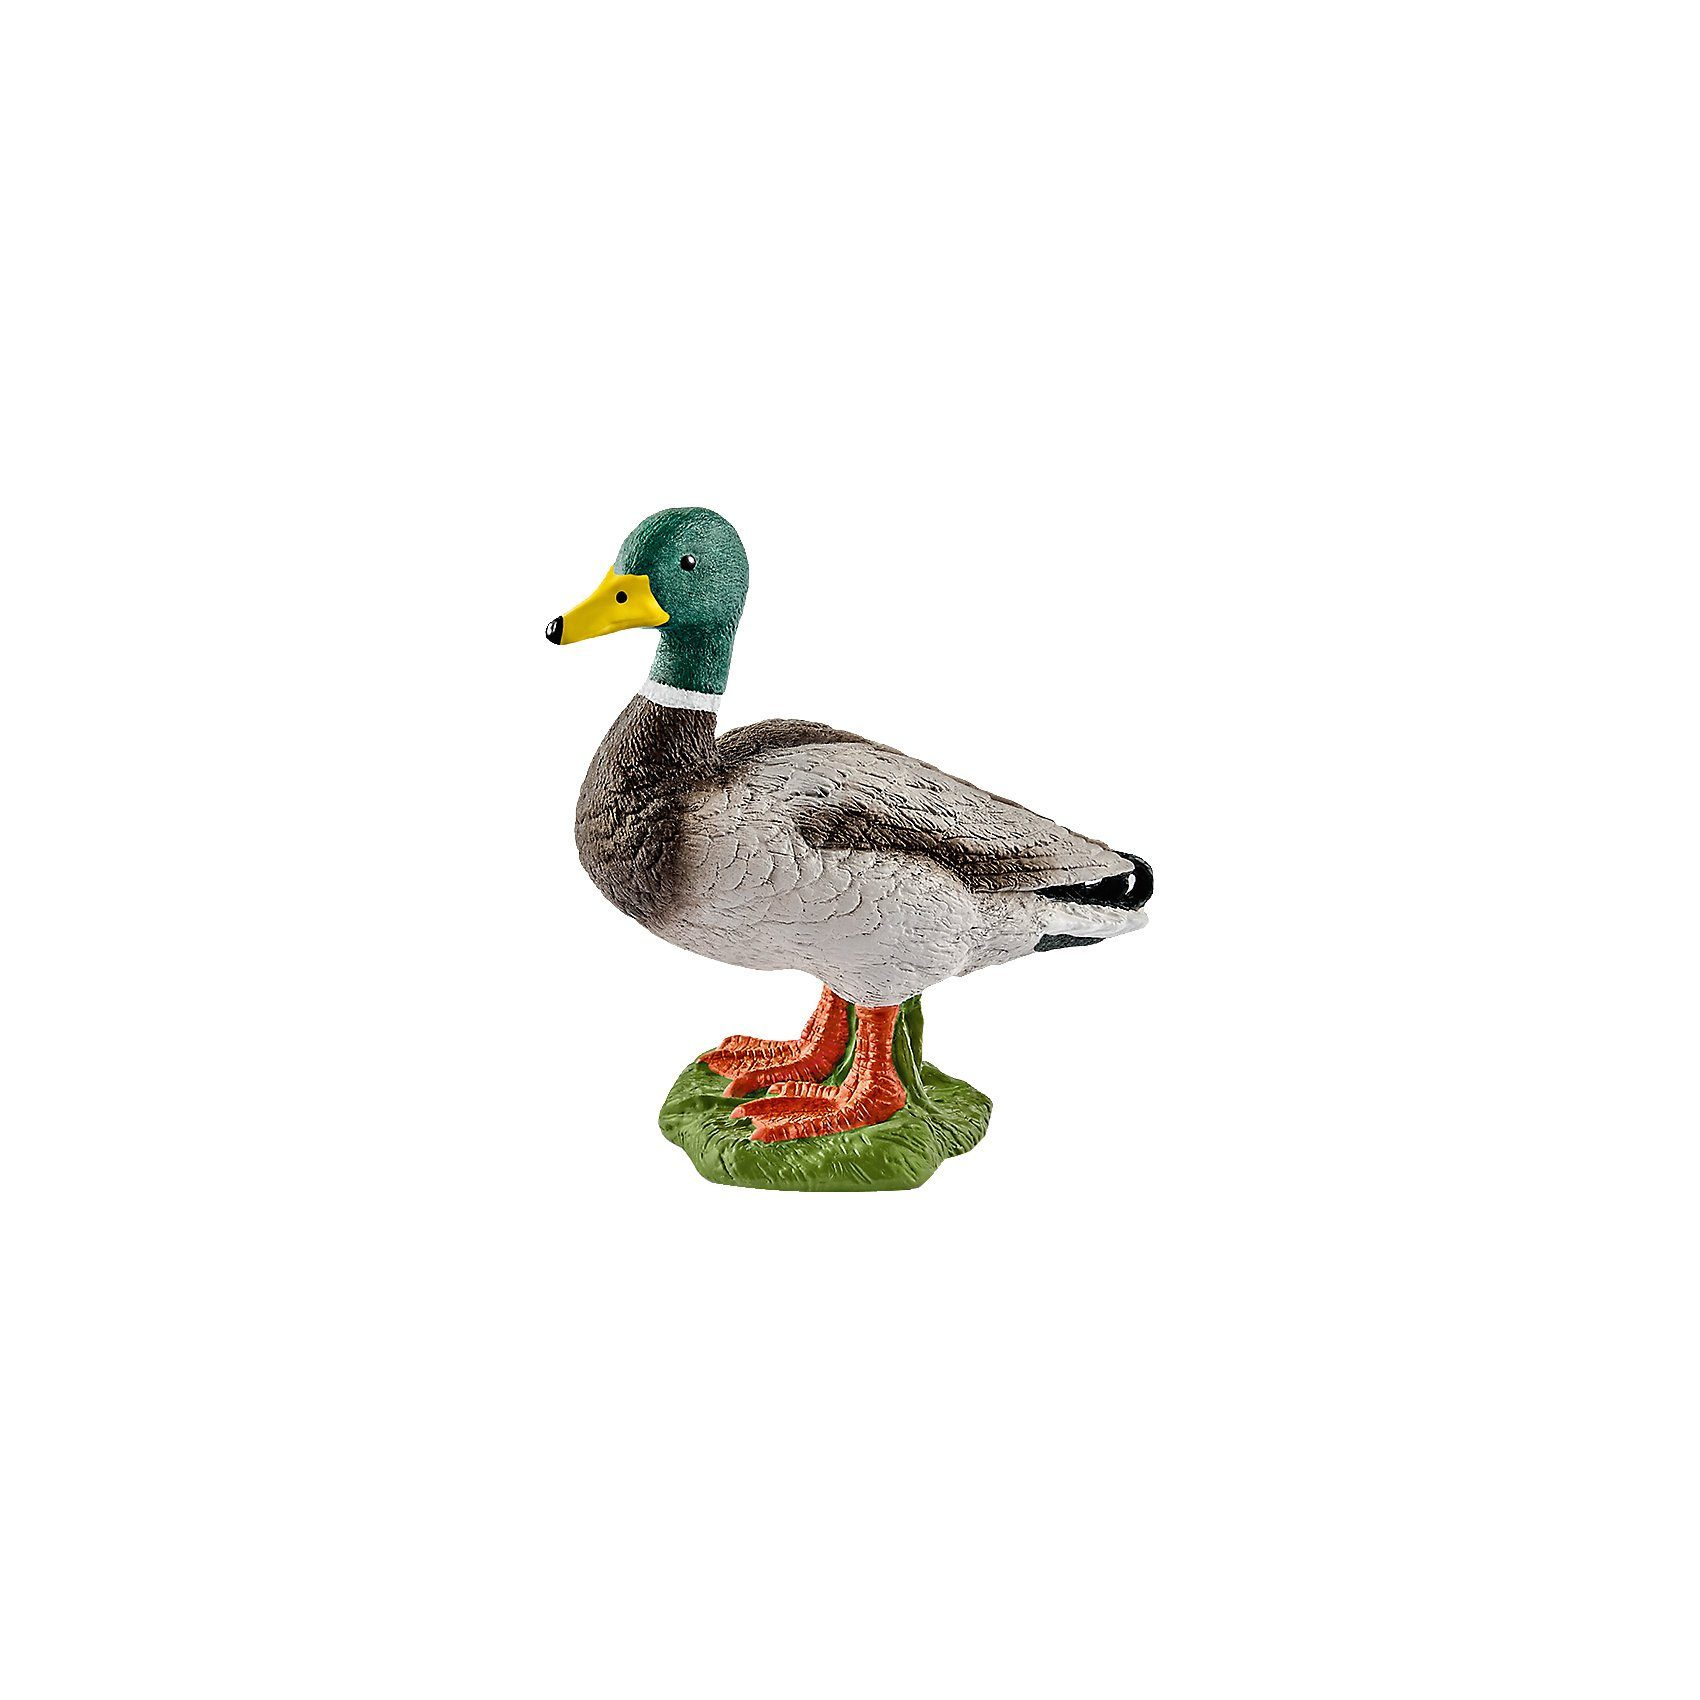 Schleich® 13824 Farm World: Erpel